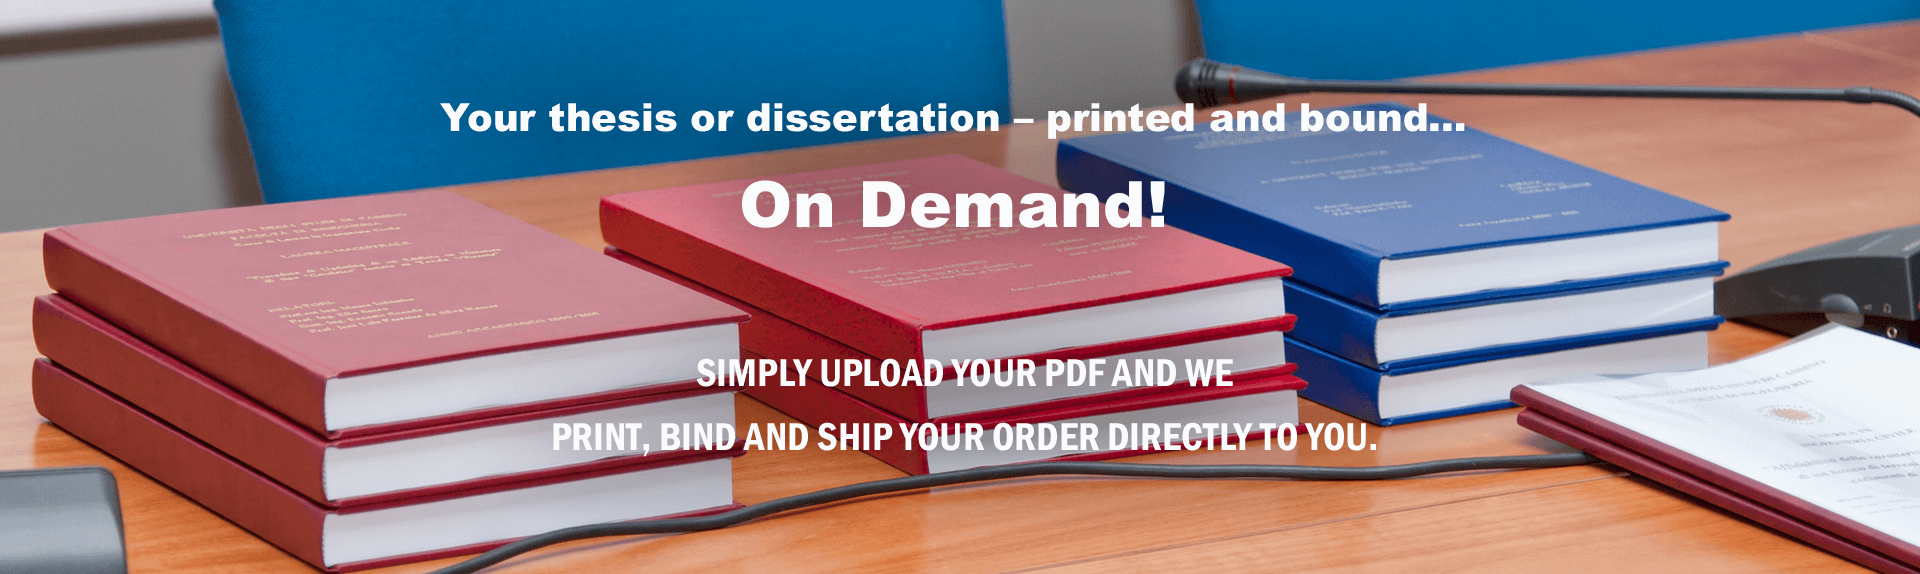 Thesis on Demand